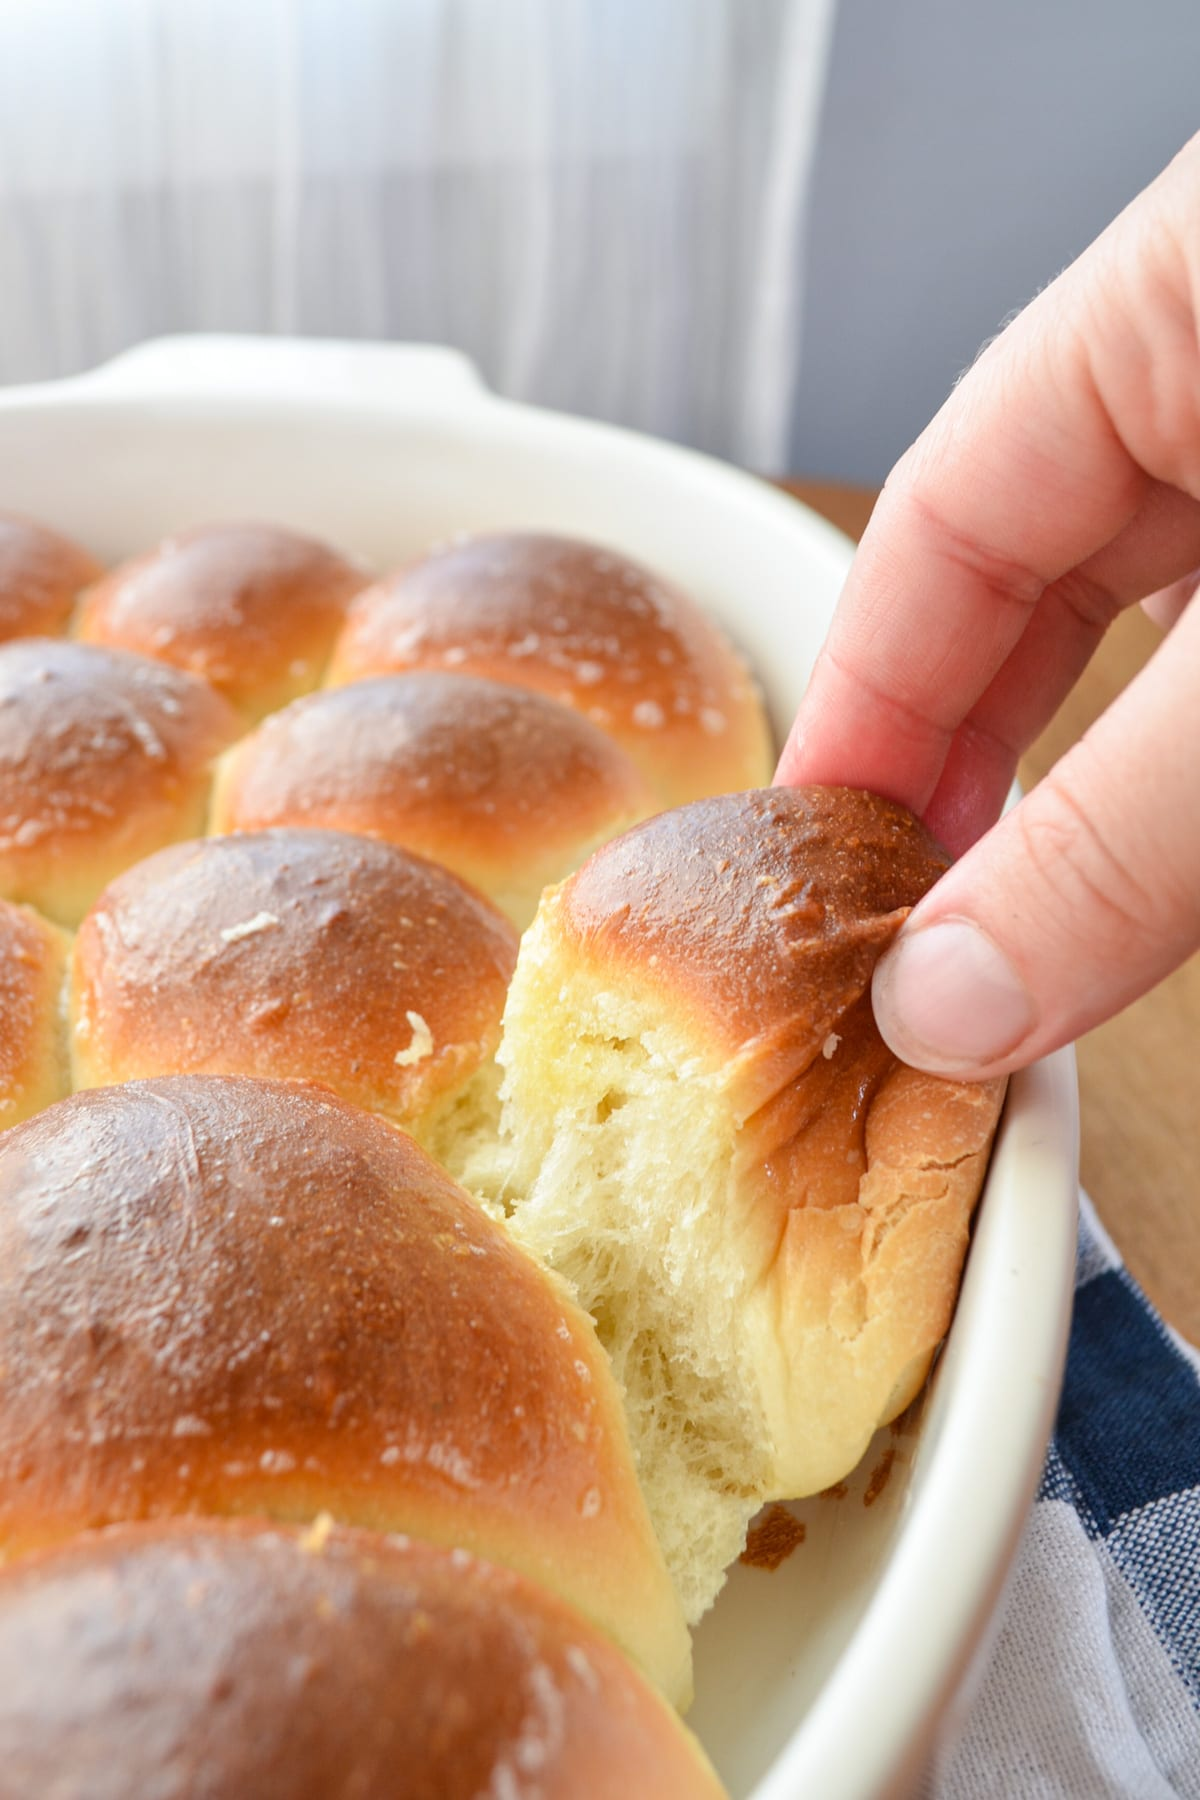 A soft and fluffy snowflake roll being pulled from a baking dish.